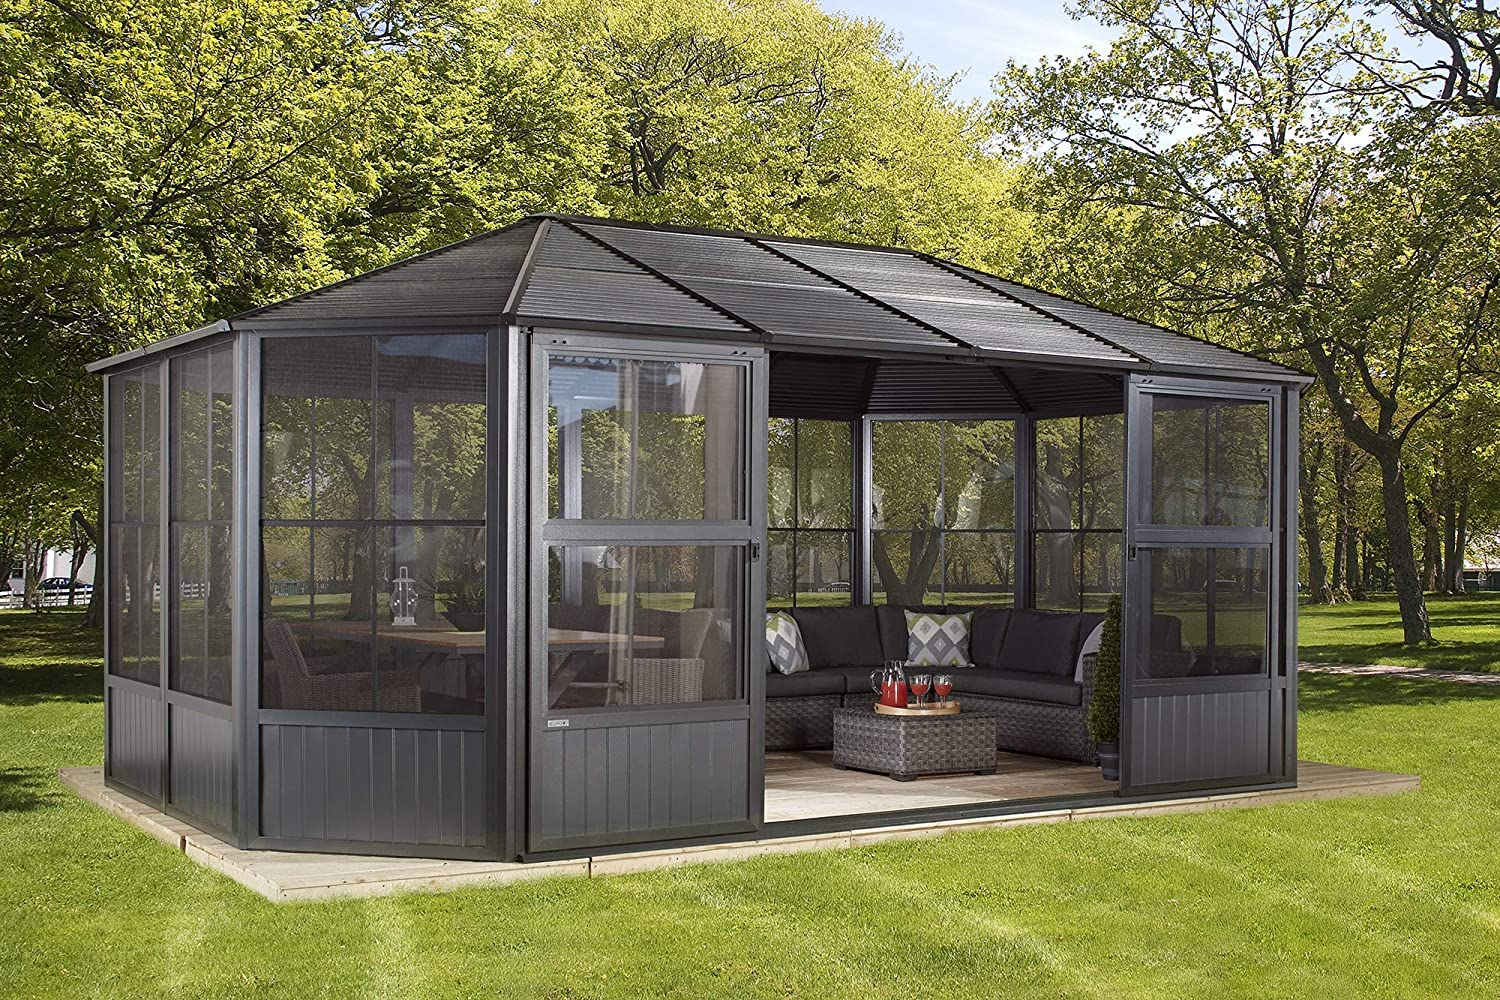 Sojag 12 x 18 Outdoor Charleston Aluminum Solarium Sunroom with Mosquito Net, Dark Gray